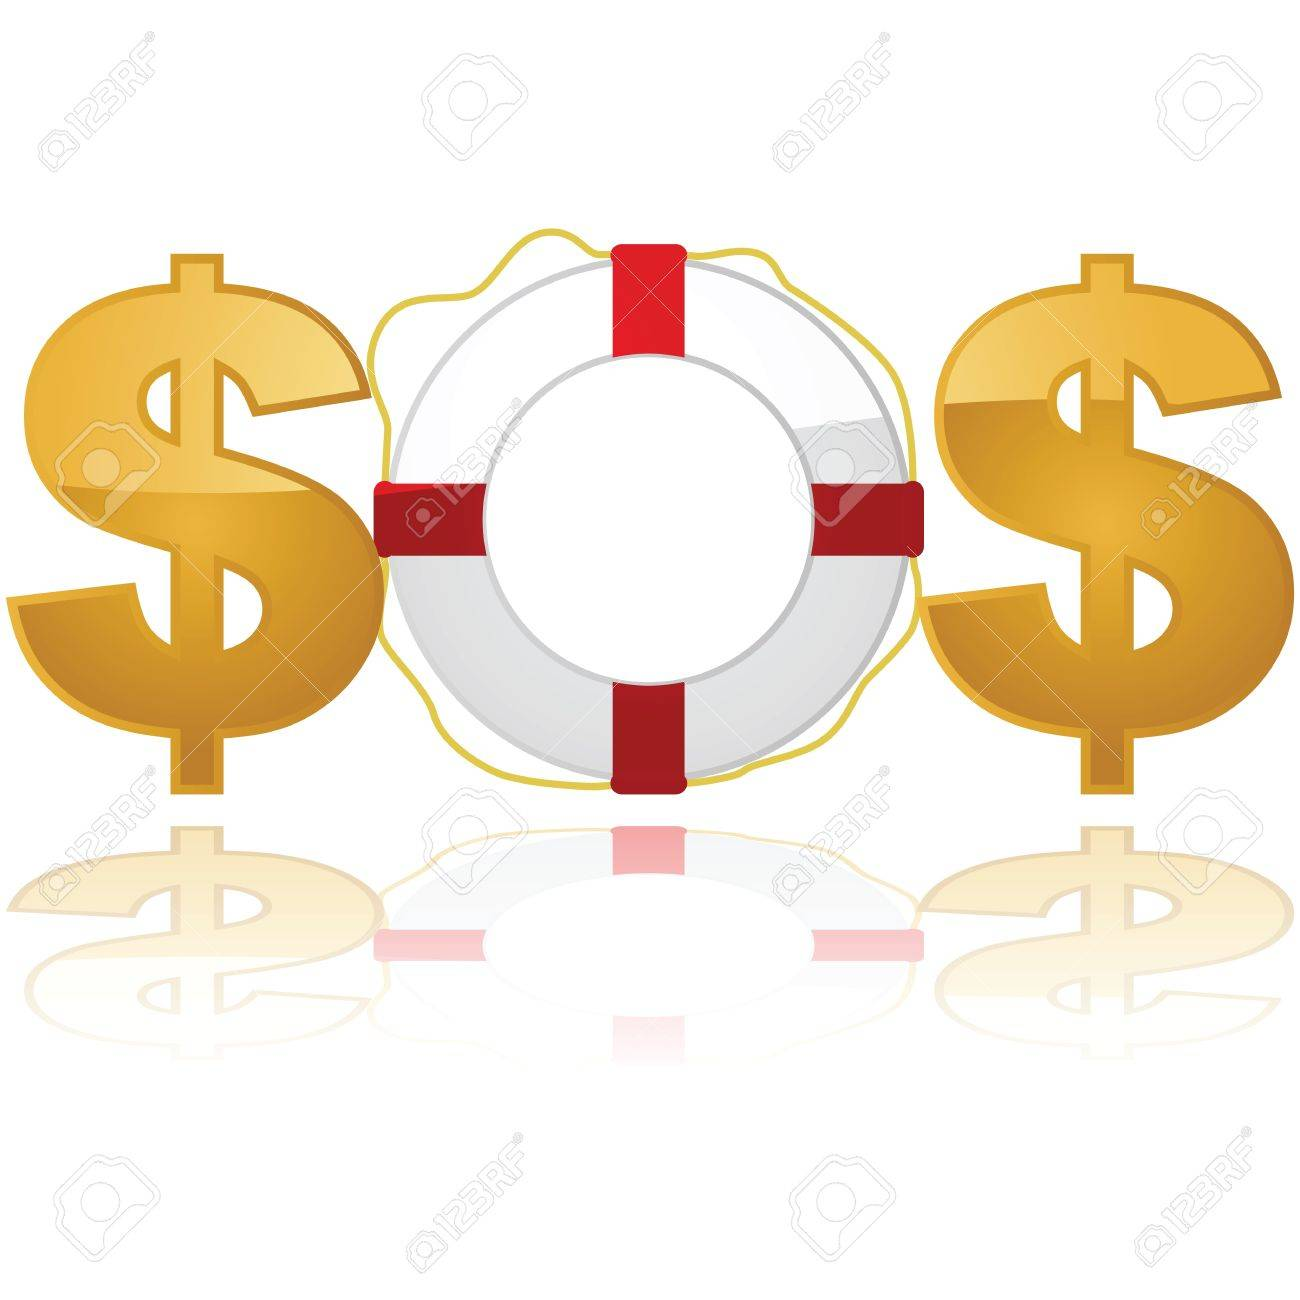 Concept illustration showing a lifesaver between two $ signs, spelling out the emergency code SOS Stock Vector - 9930733